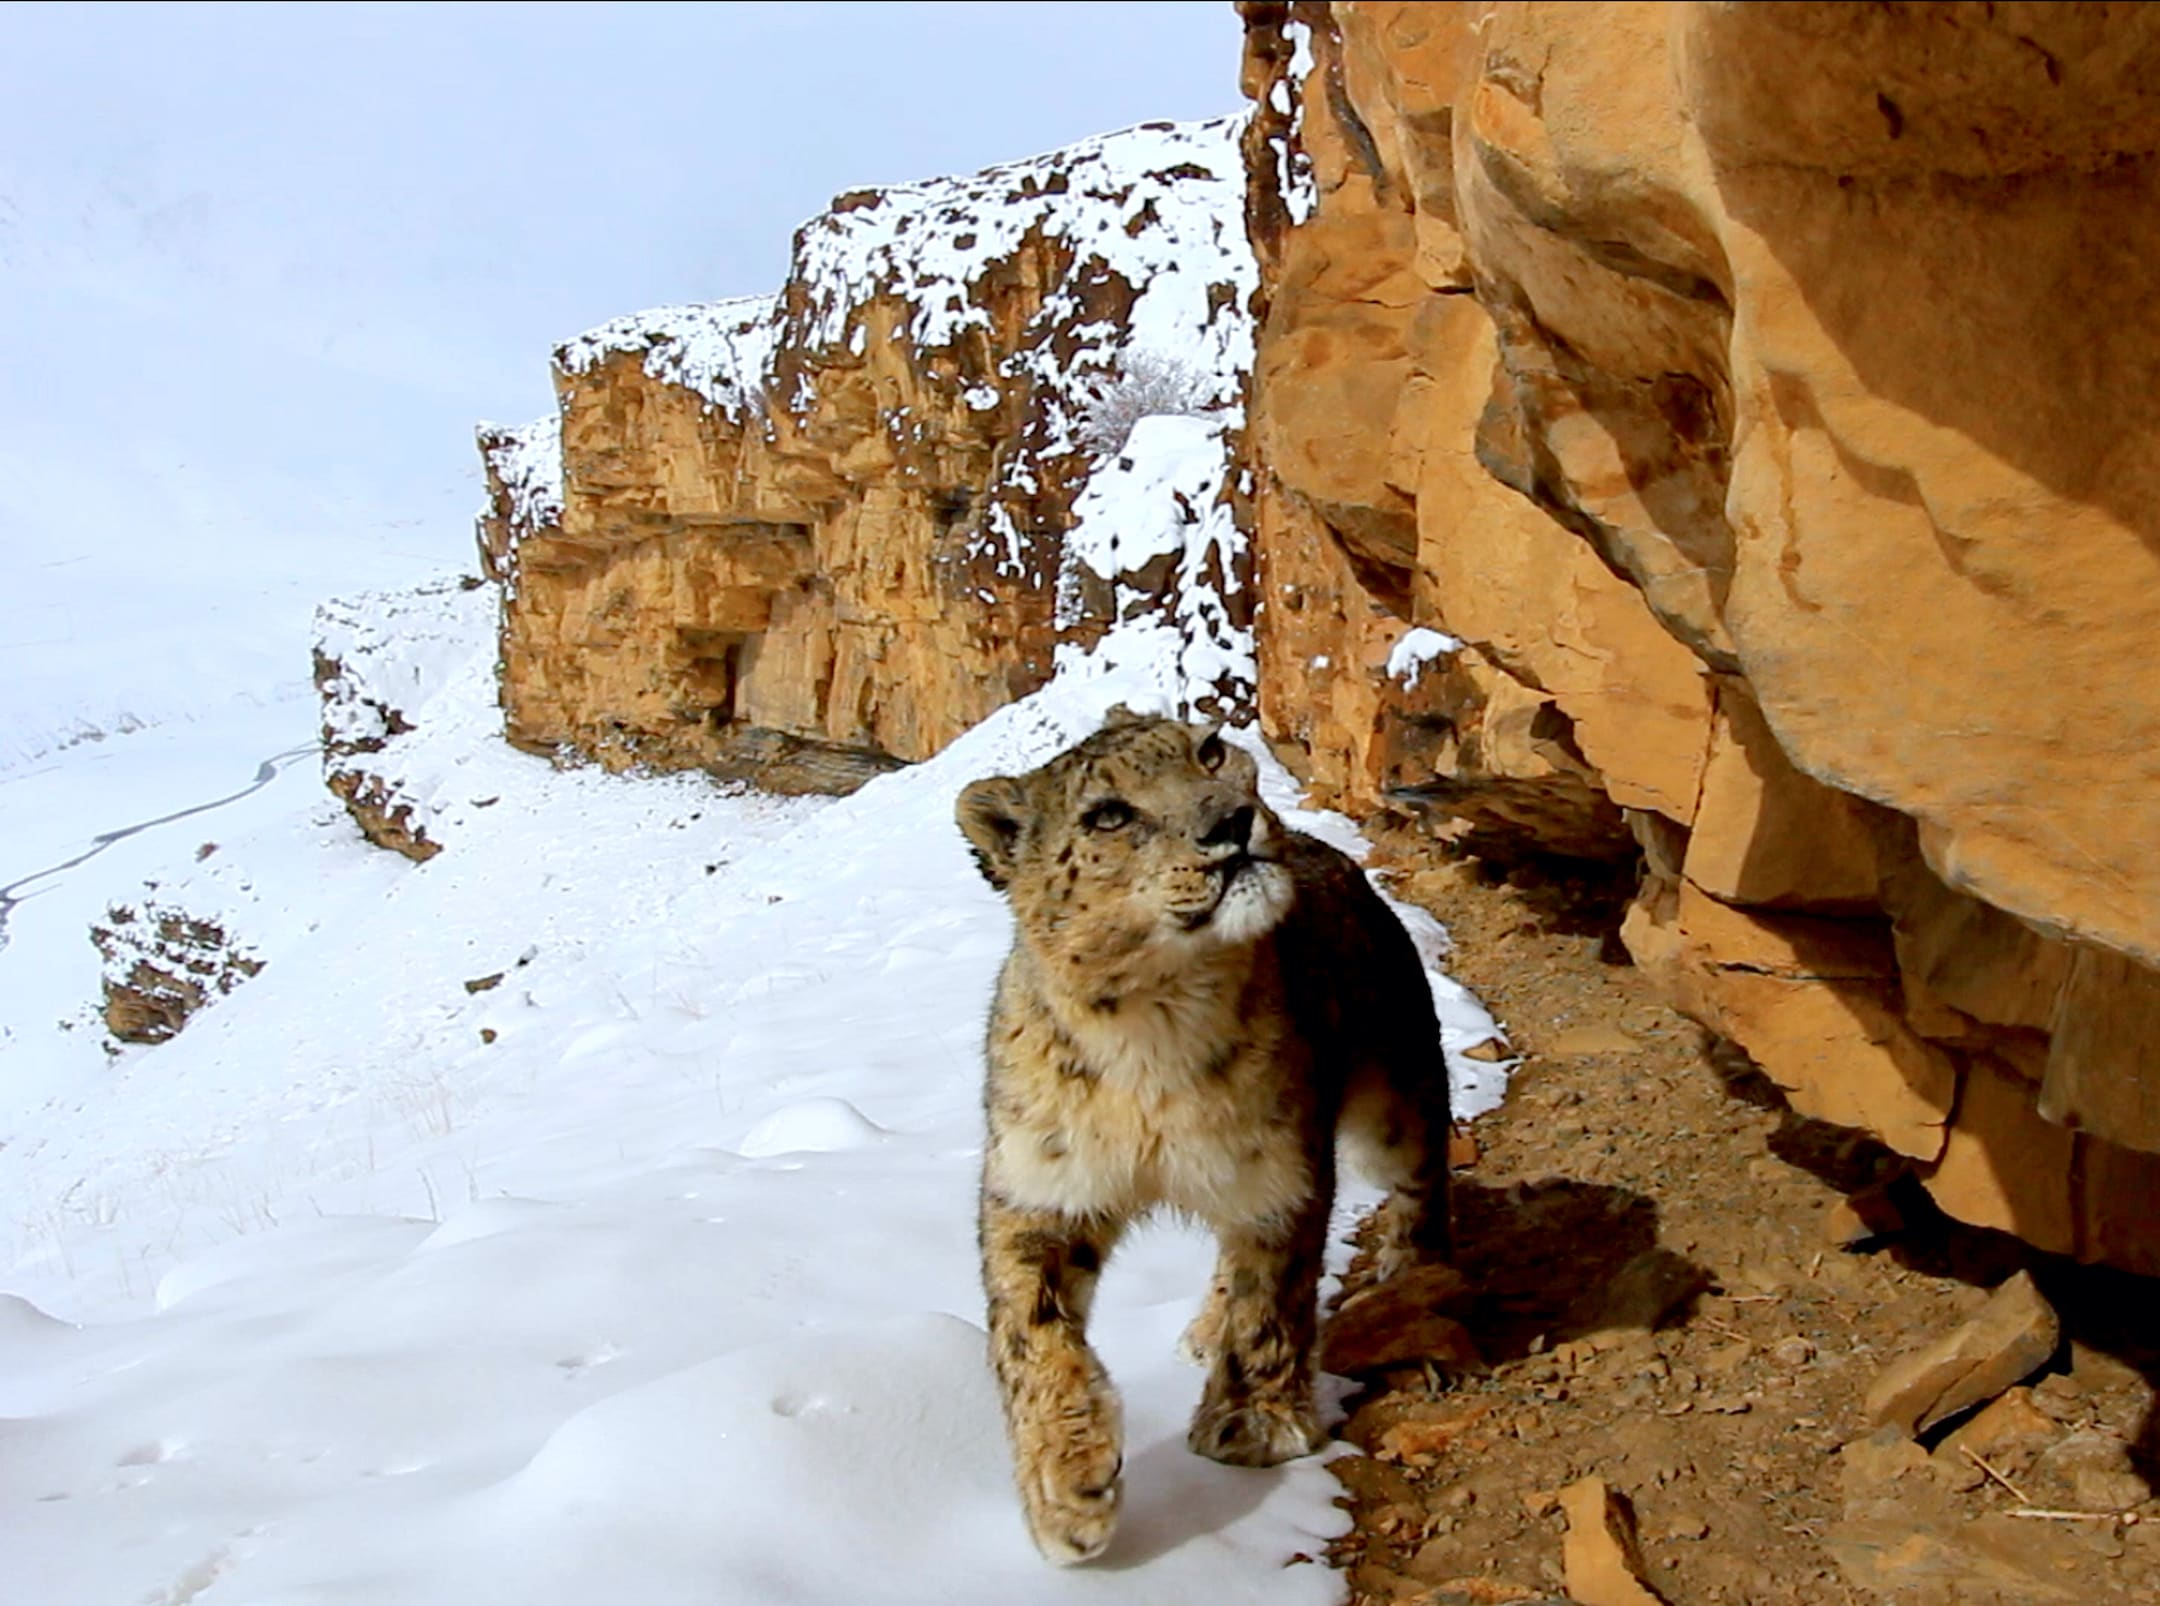 Protecting the Snow Leopards of Asia's Mountains